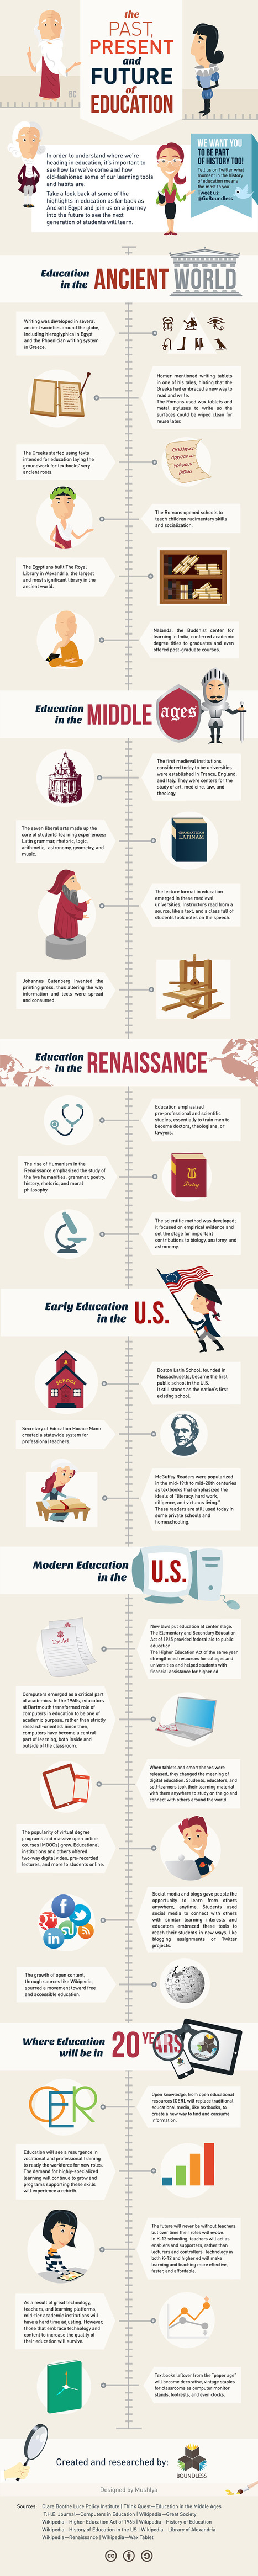 Infographic: The History of Education | The Academy for self-Learners | Scoop.it